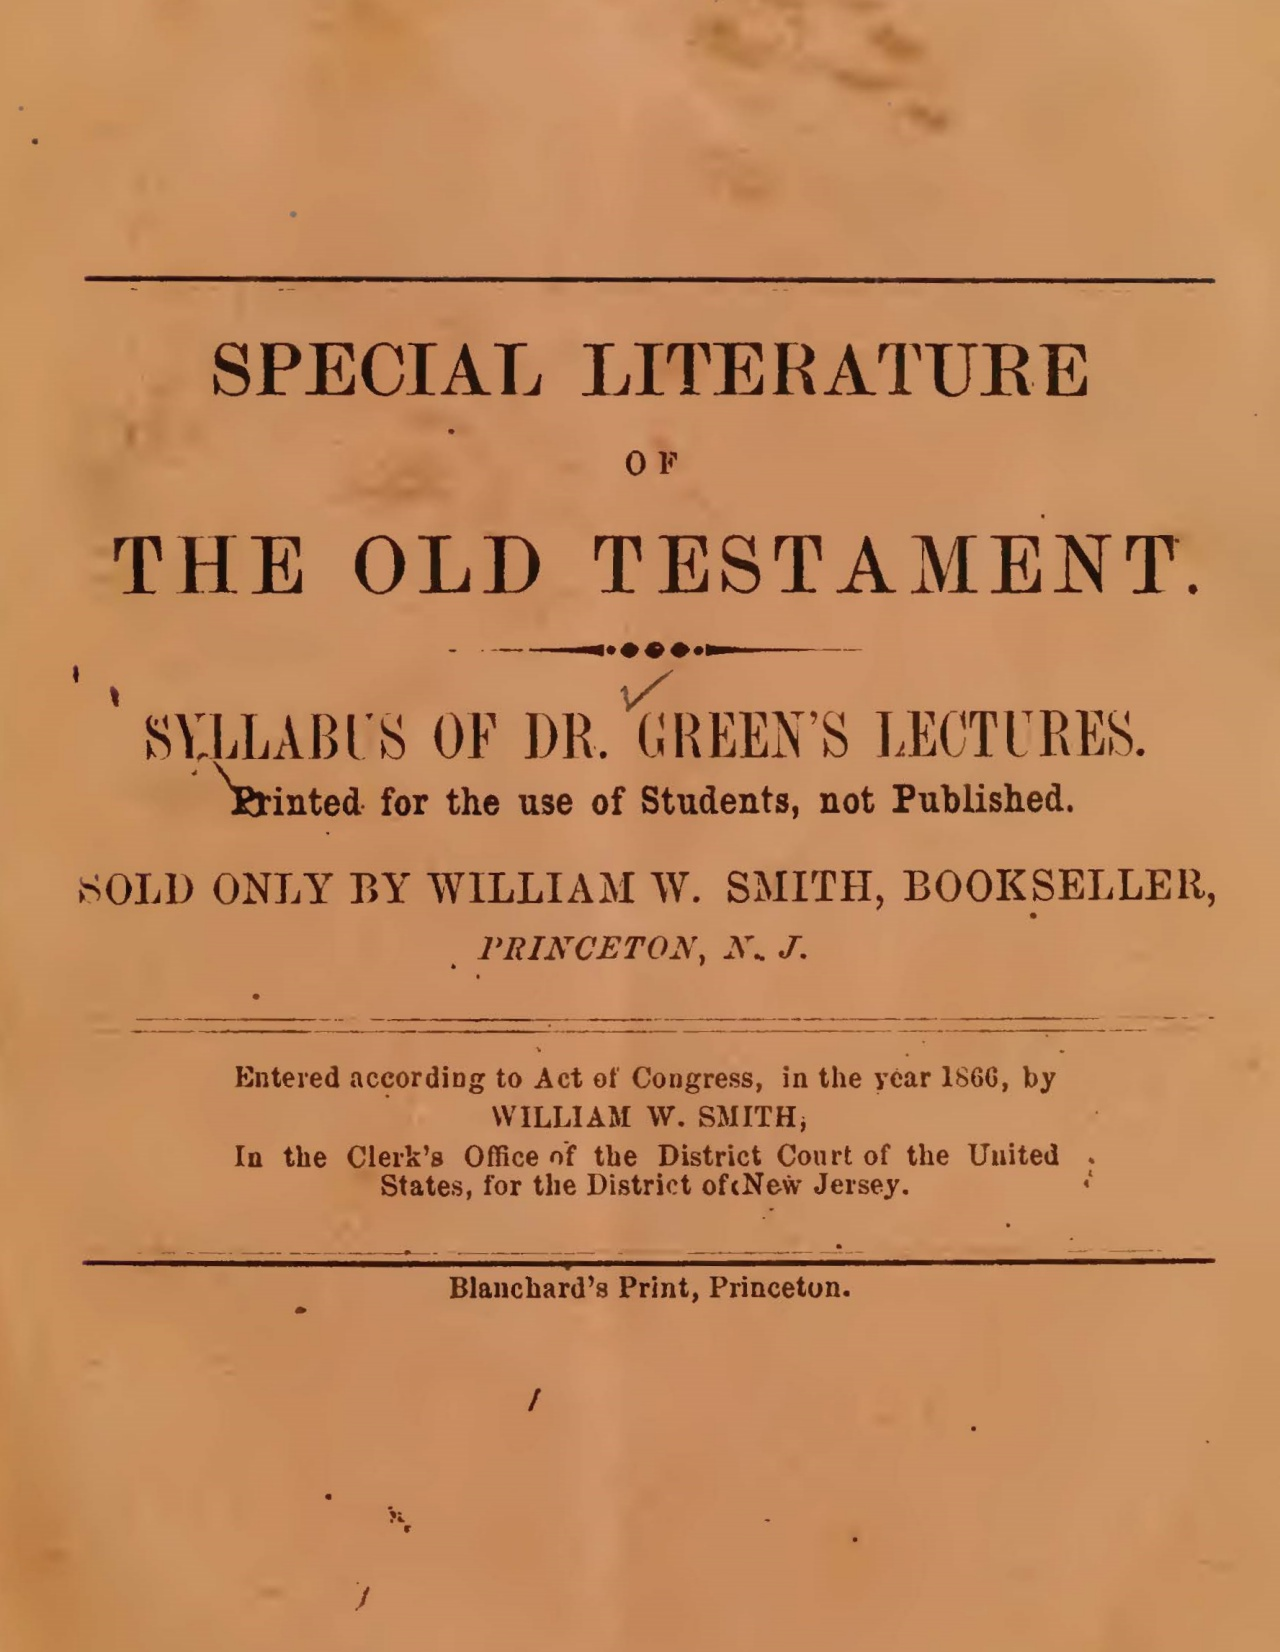 Green, William Henry, Special Literature of the Old Testament Title Page.jpg